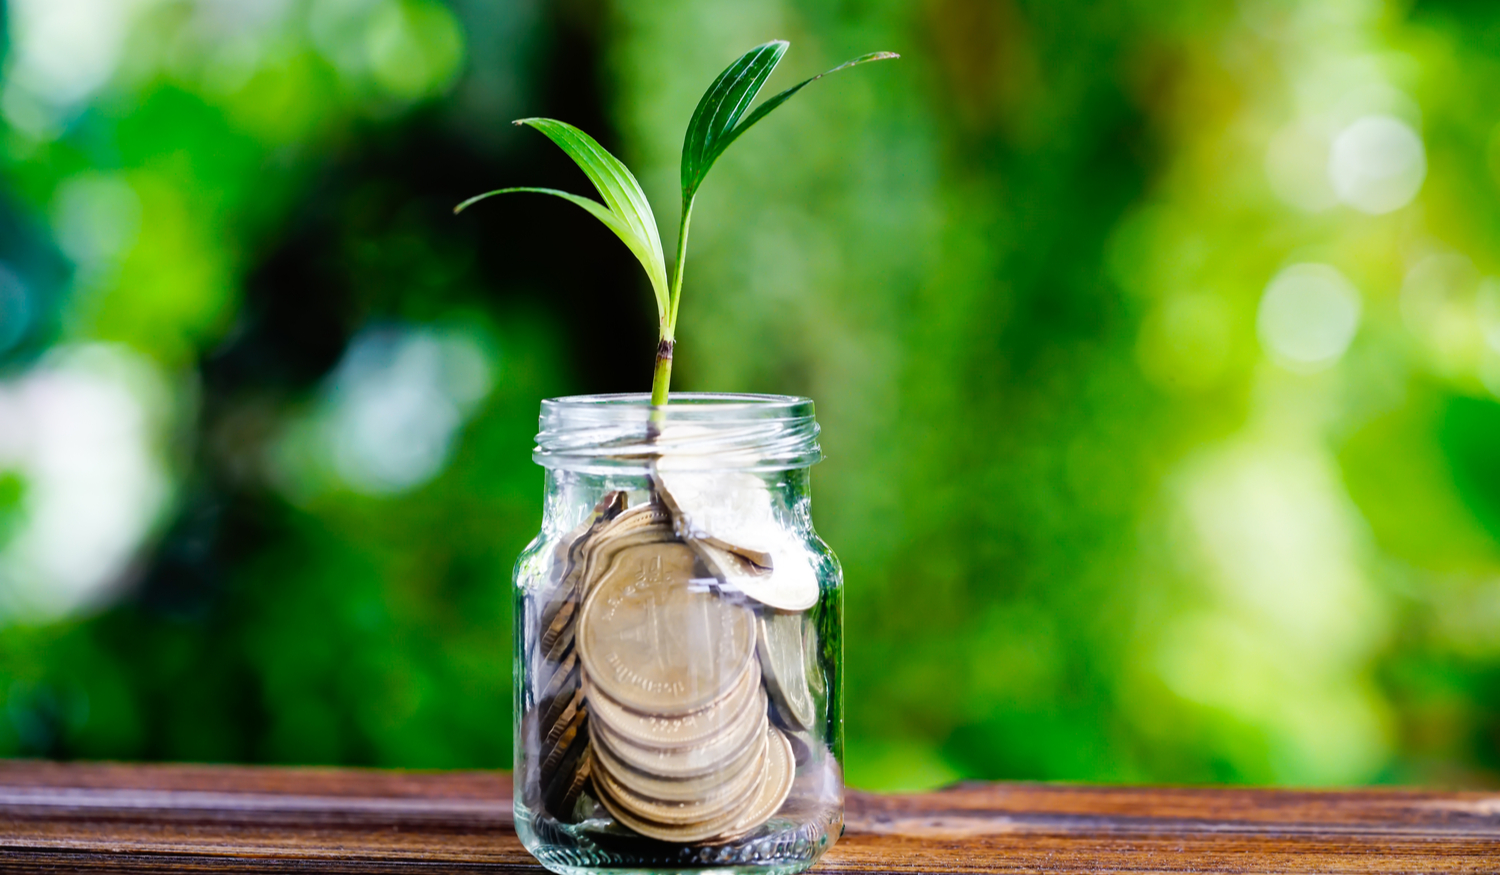 Plant growing in a jar of coins